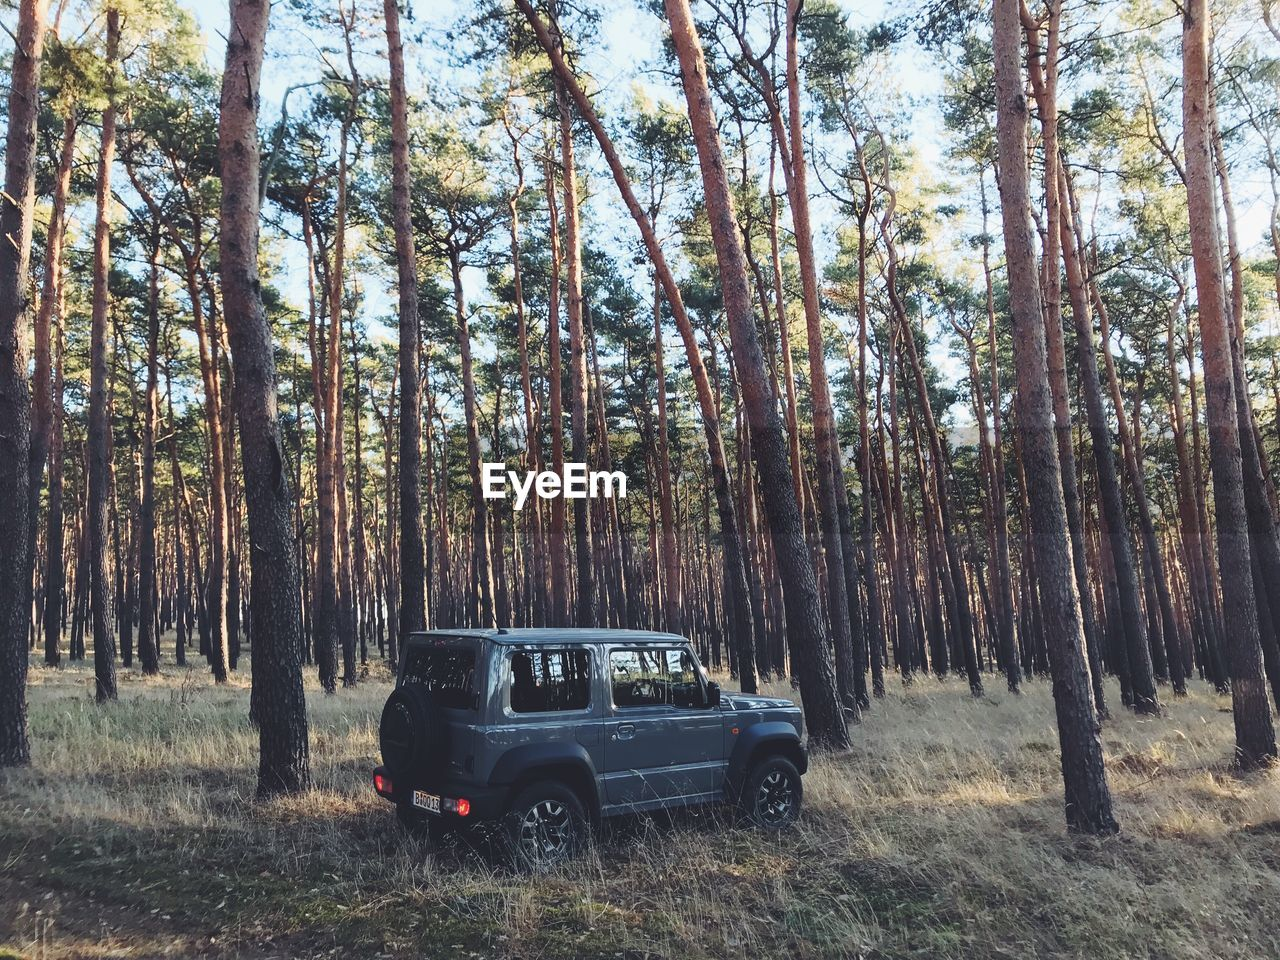 tree, plant, forest, land, mode of transportation, motor vehicle, car, nature, trunk, transportation, tree trunk, day, woodland, land vehicle, growth, outdoors, landscape, field, non-urban scene, no people, sports utility vehicle